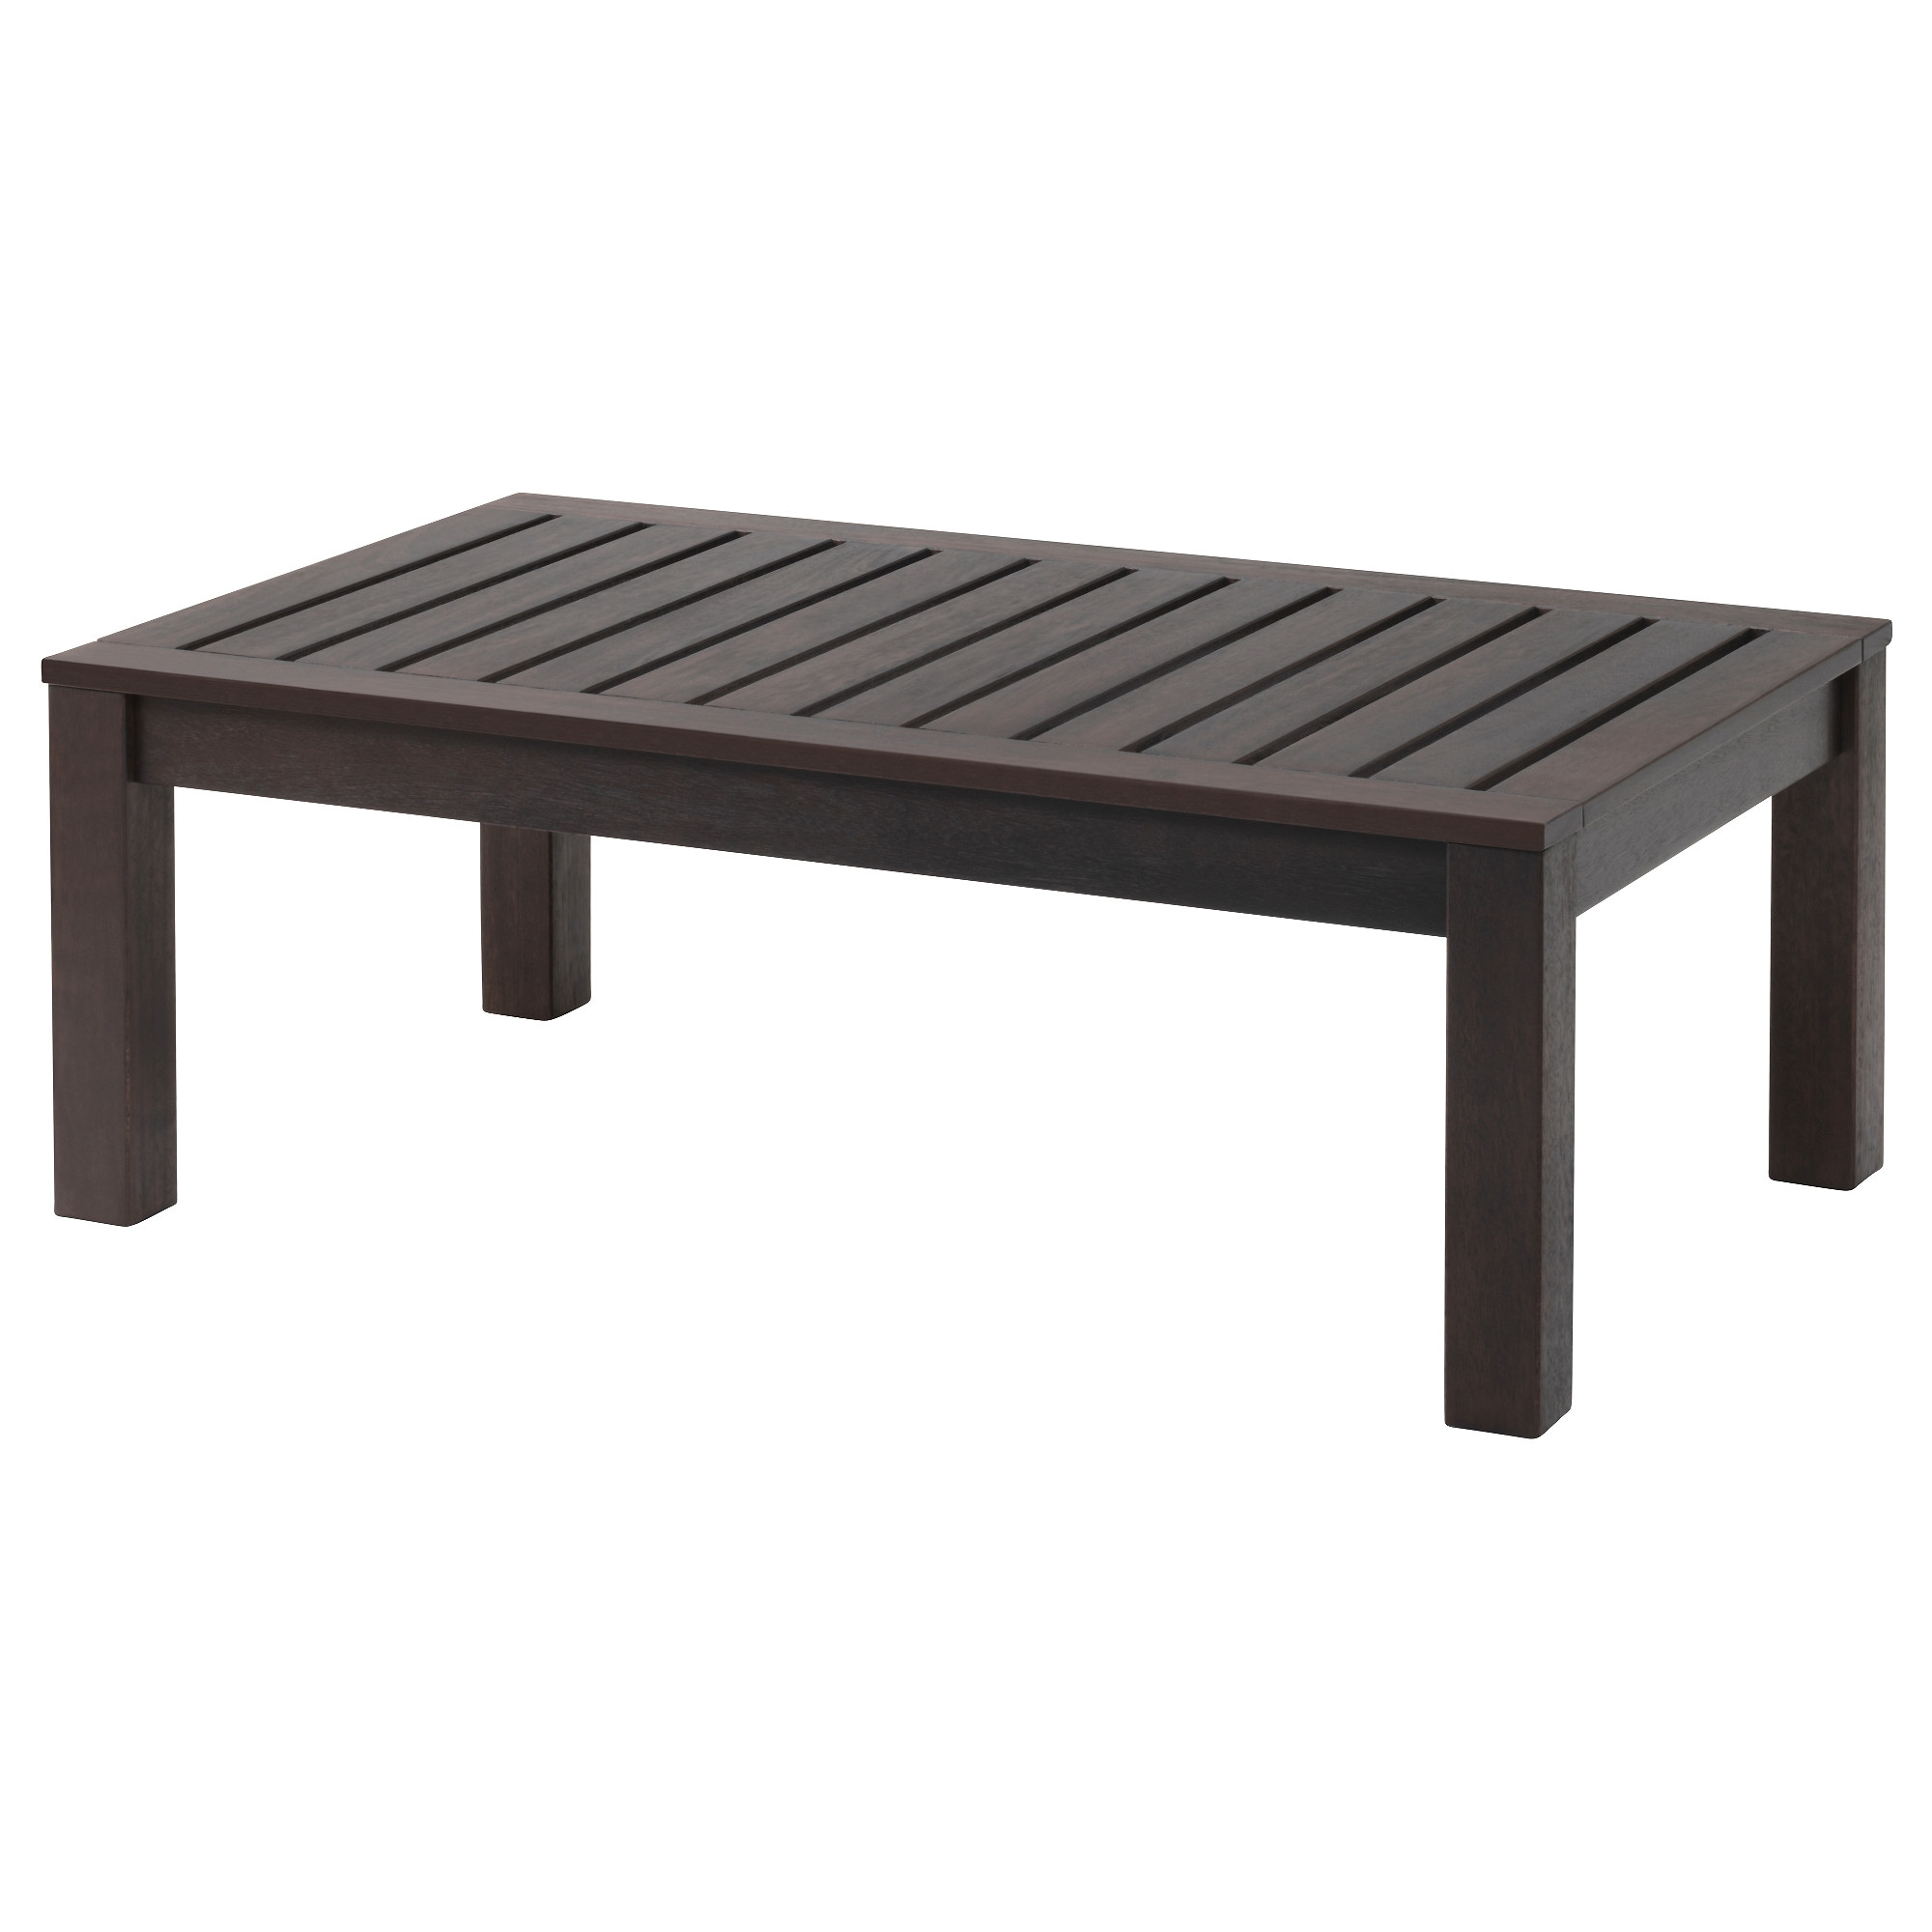 KL–VEN Coffee table outdoor IKEA